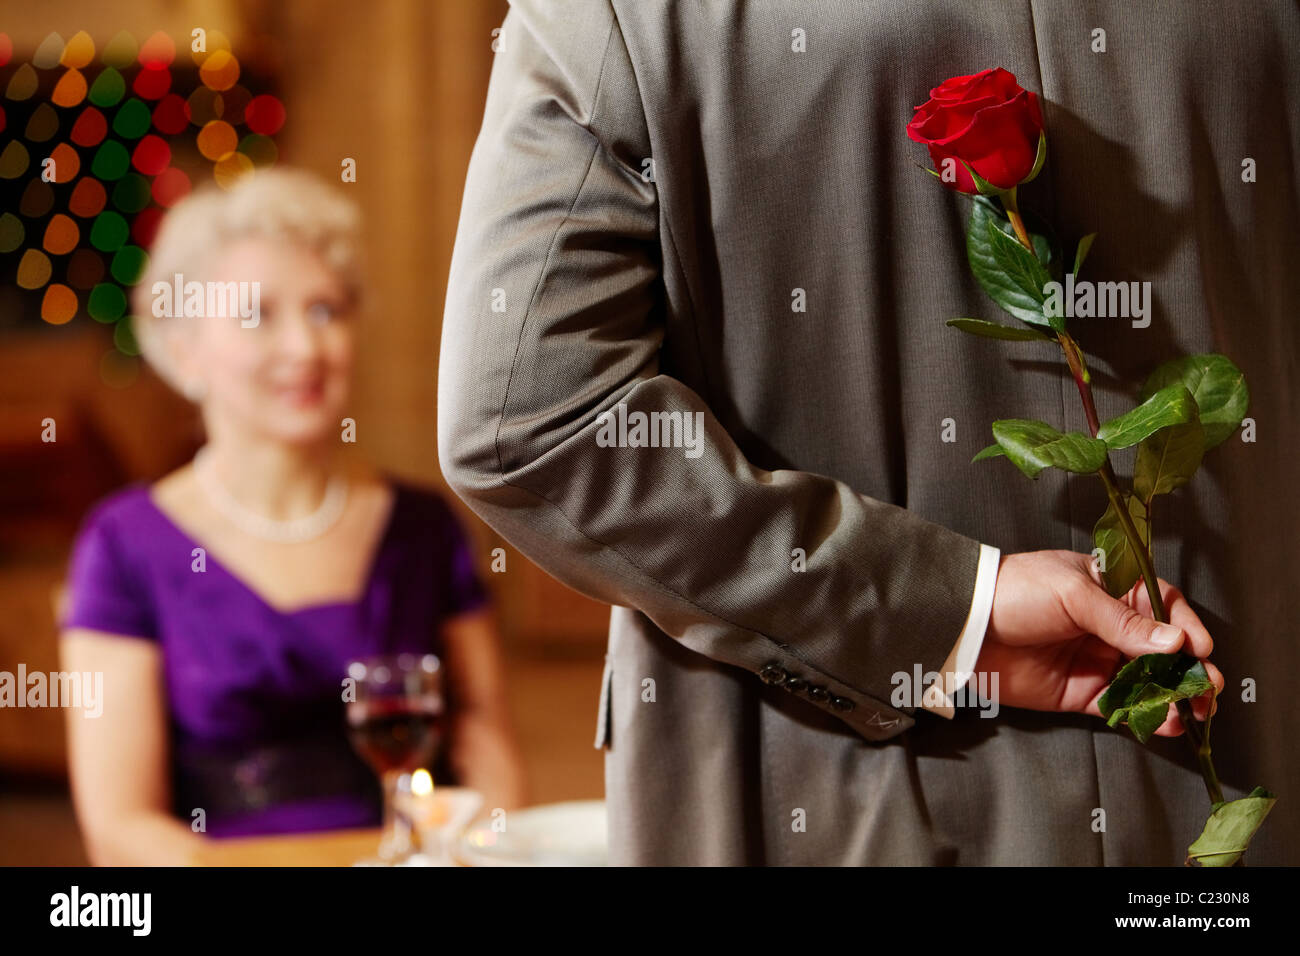 Rear view of man holding red rose in hand on background of intrigued female - Stock Image